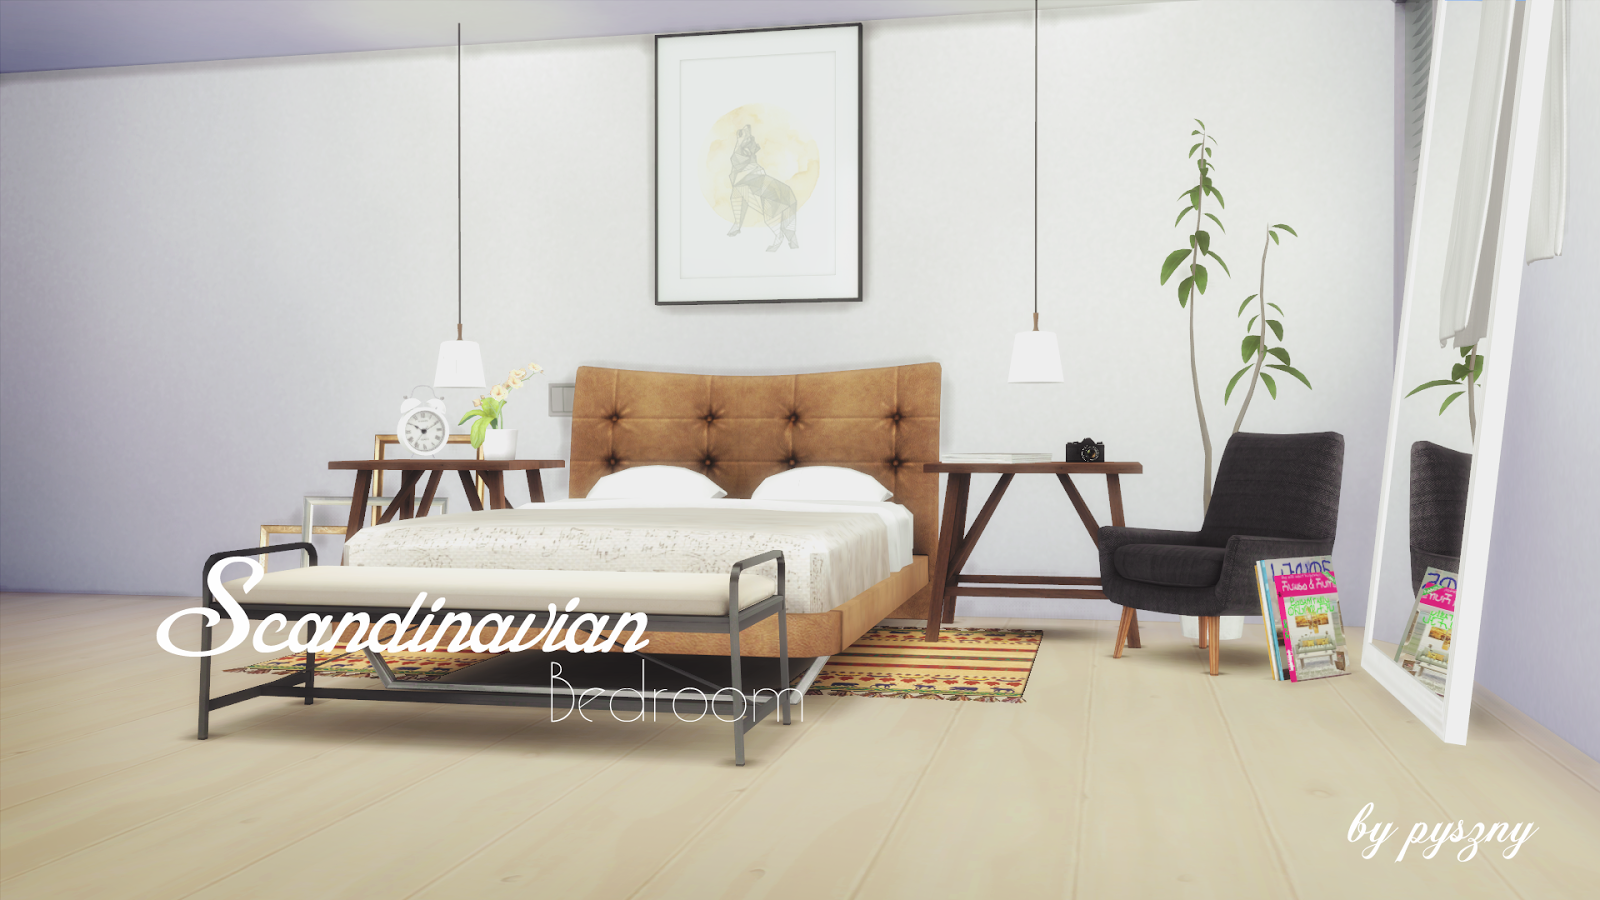 Scandinavian Design Bedroom Set My Sims 4 Blog Scandinavian Bedroom Set By Pyszny